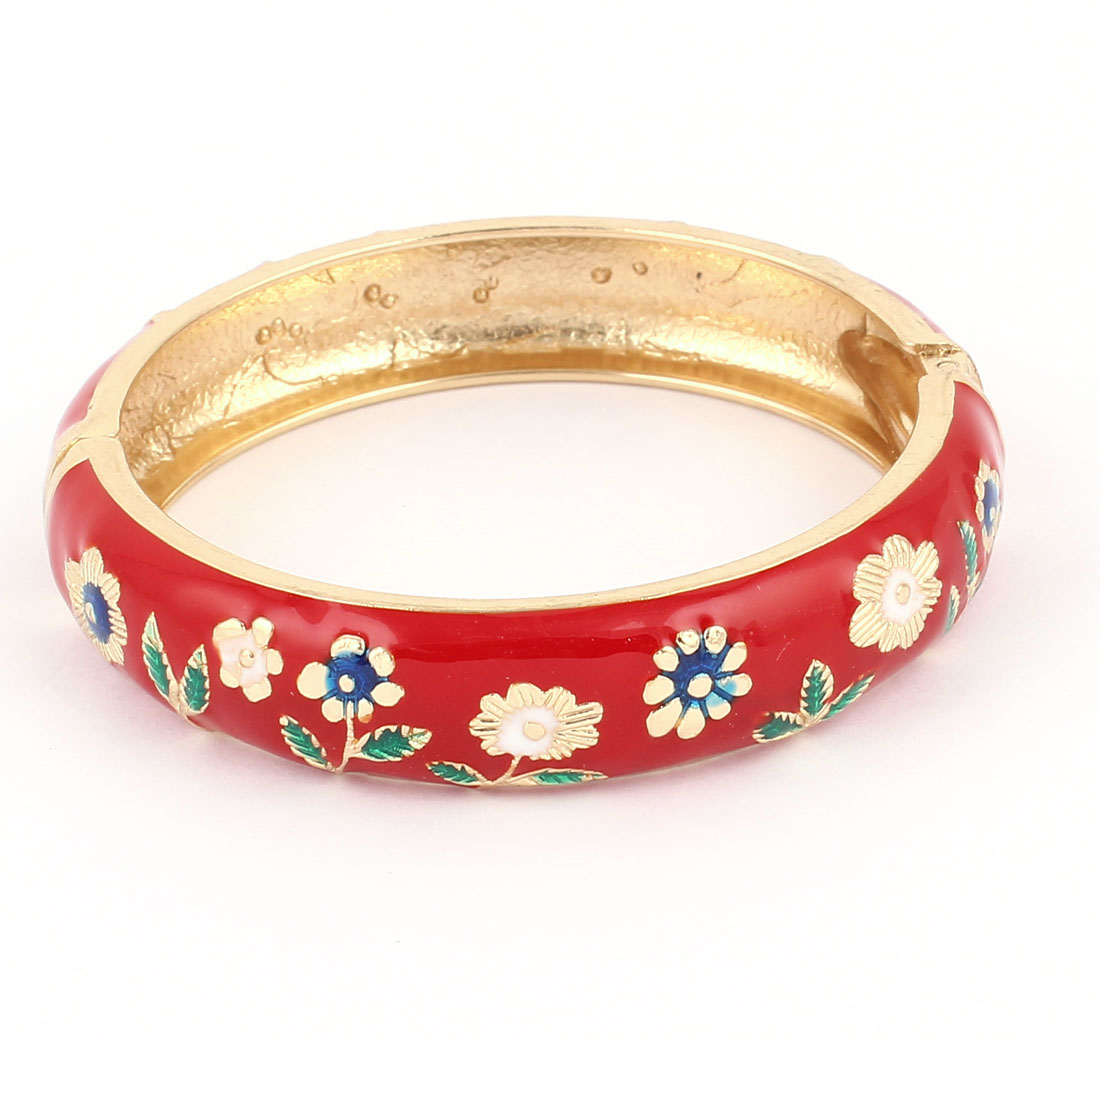 Lady 2.8-inch Dia Red Metal Hinge Wrist Enamel Bracelet Bangle